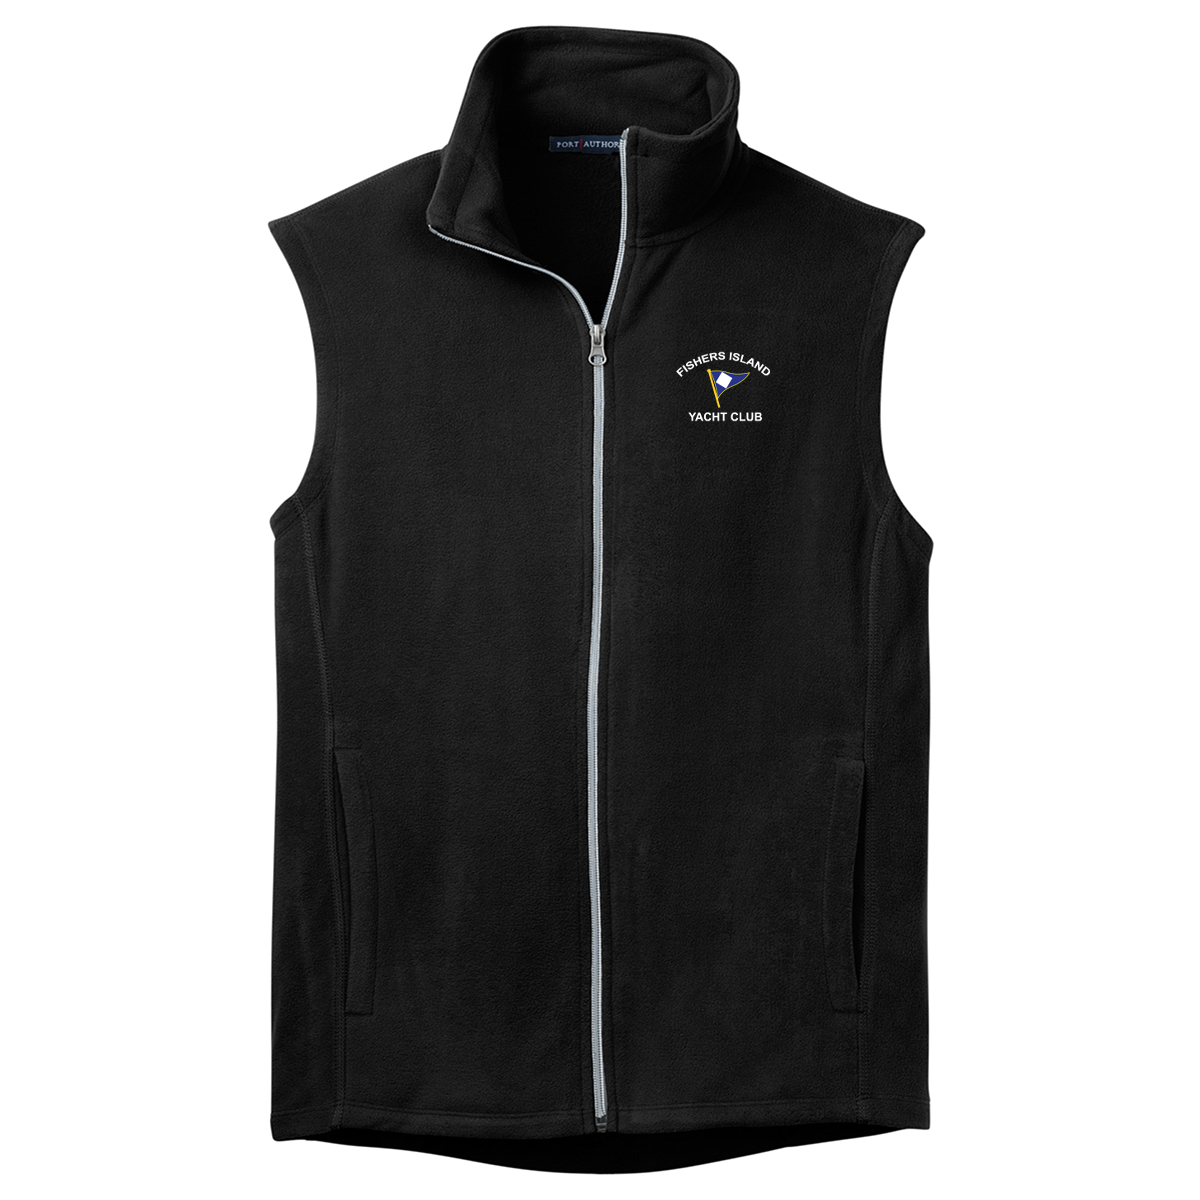 Fishers Island Yacht Club -  Men's Micro Fleece Vest